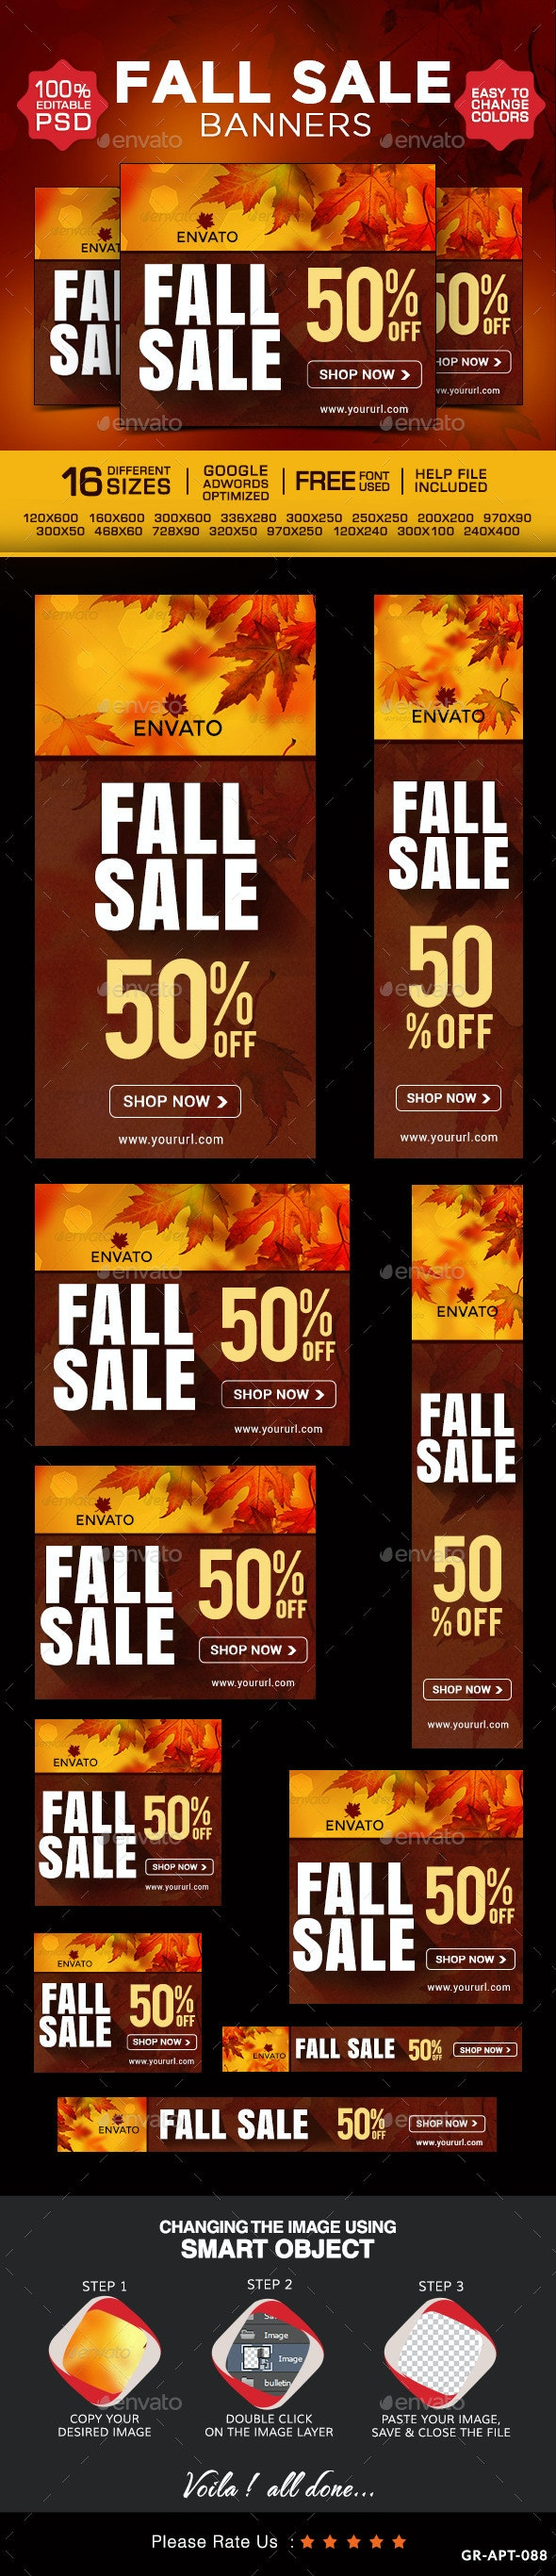 Fall Sale Banners - Banners & Ads Web Elements